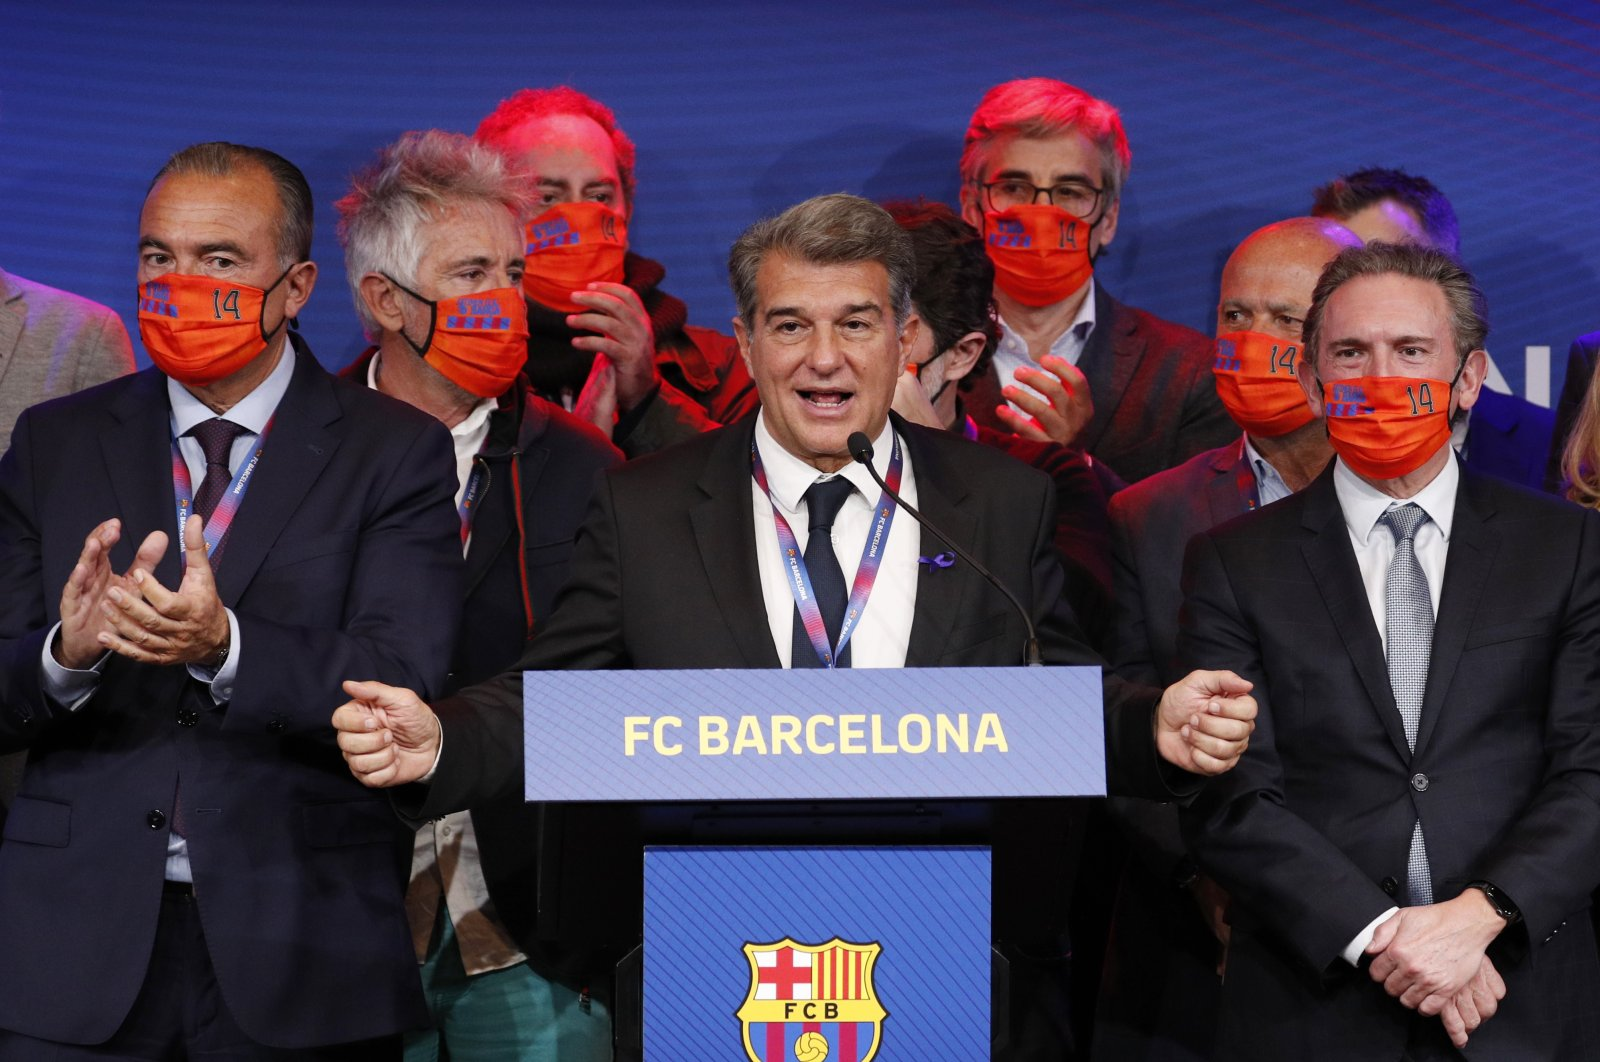 Newly elected FC Barcelona president Joan Laporta and his staff during a press conference at Camp Nou stadium in Barcelona, Spain, March 8, 2021. (Reuters Photo)